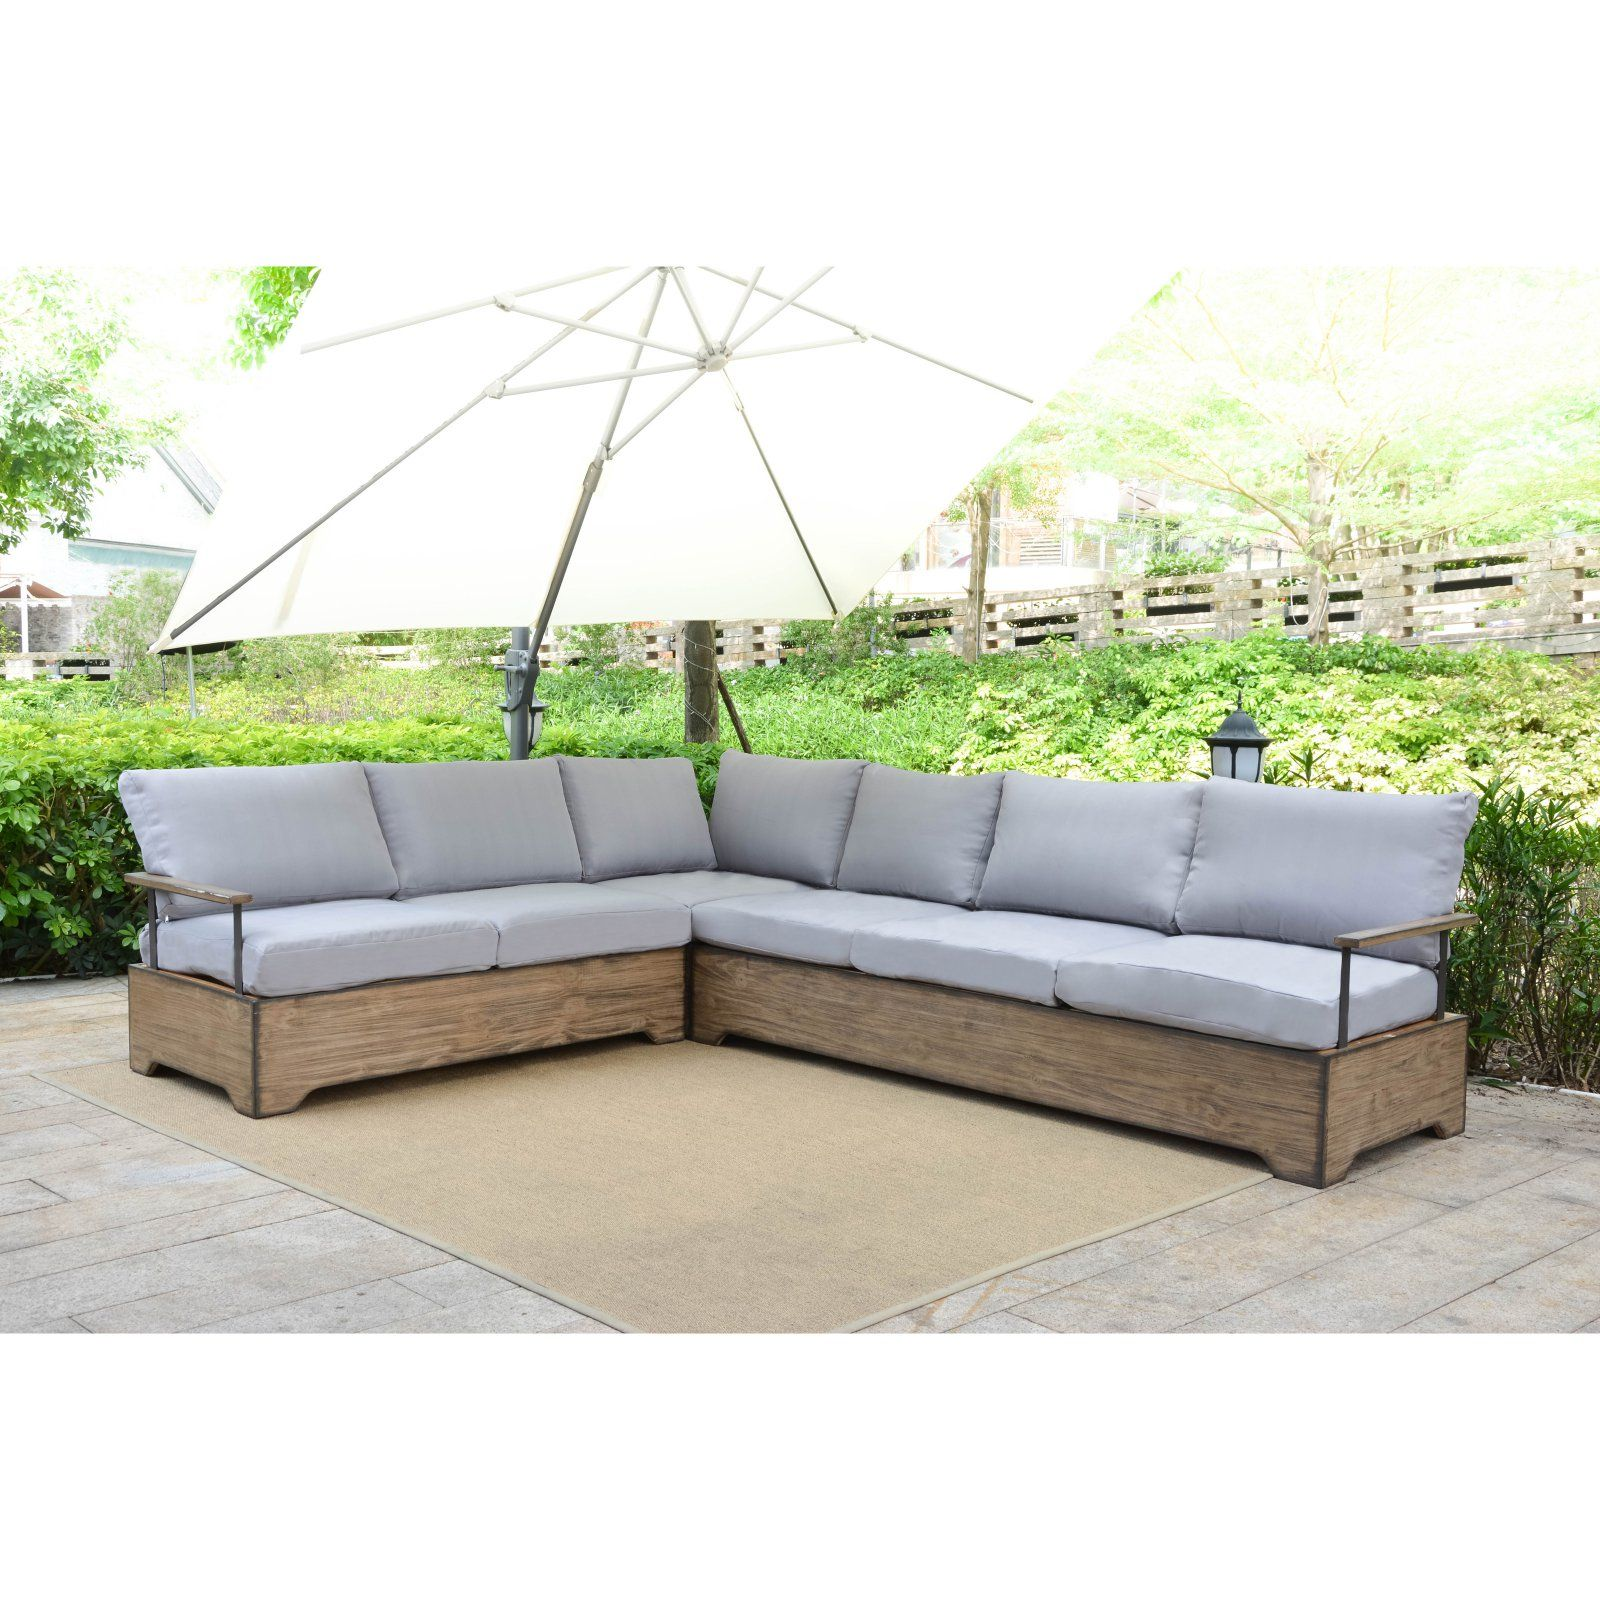 Fine Outdoor Belham Living Brevick Deep Patio Seating Sectional Camellatalisay Diy Chair Ideas Camellatalisaycom